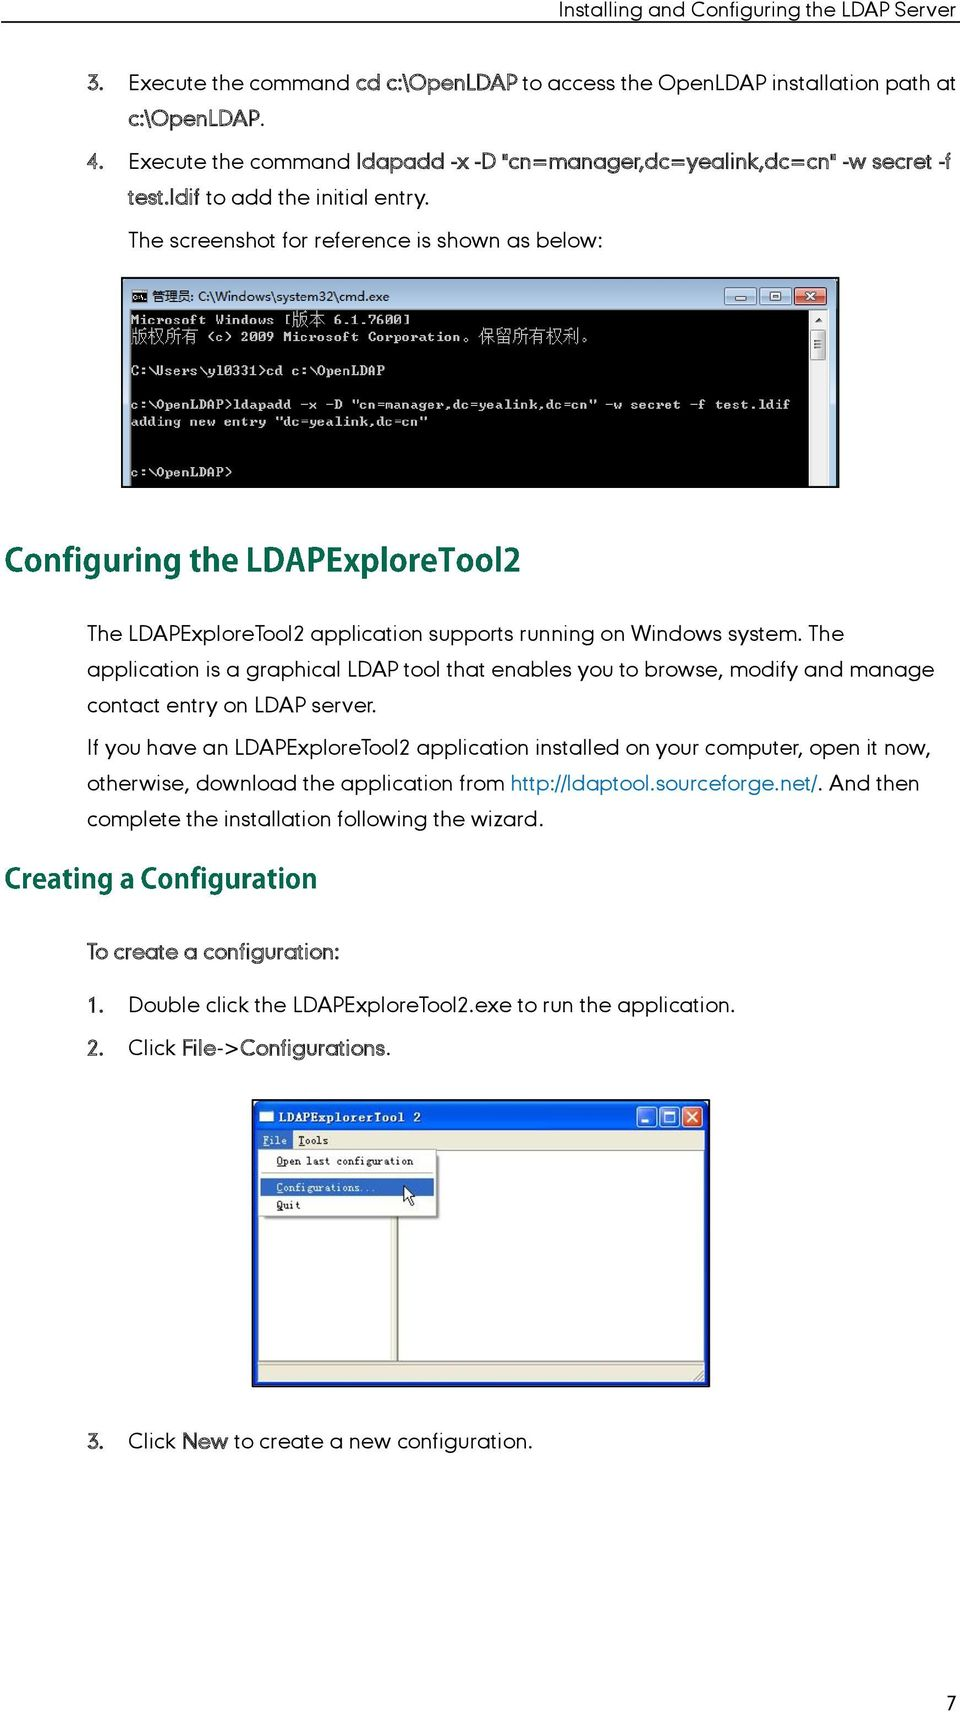 The application is a graphical LDAP tool that enables you to browse, modify and manage contact entry on LDAP server.